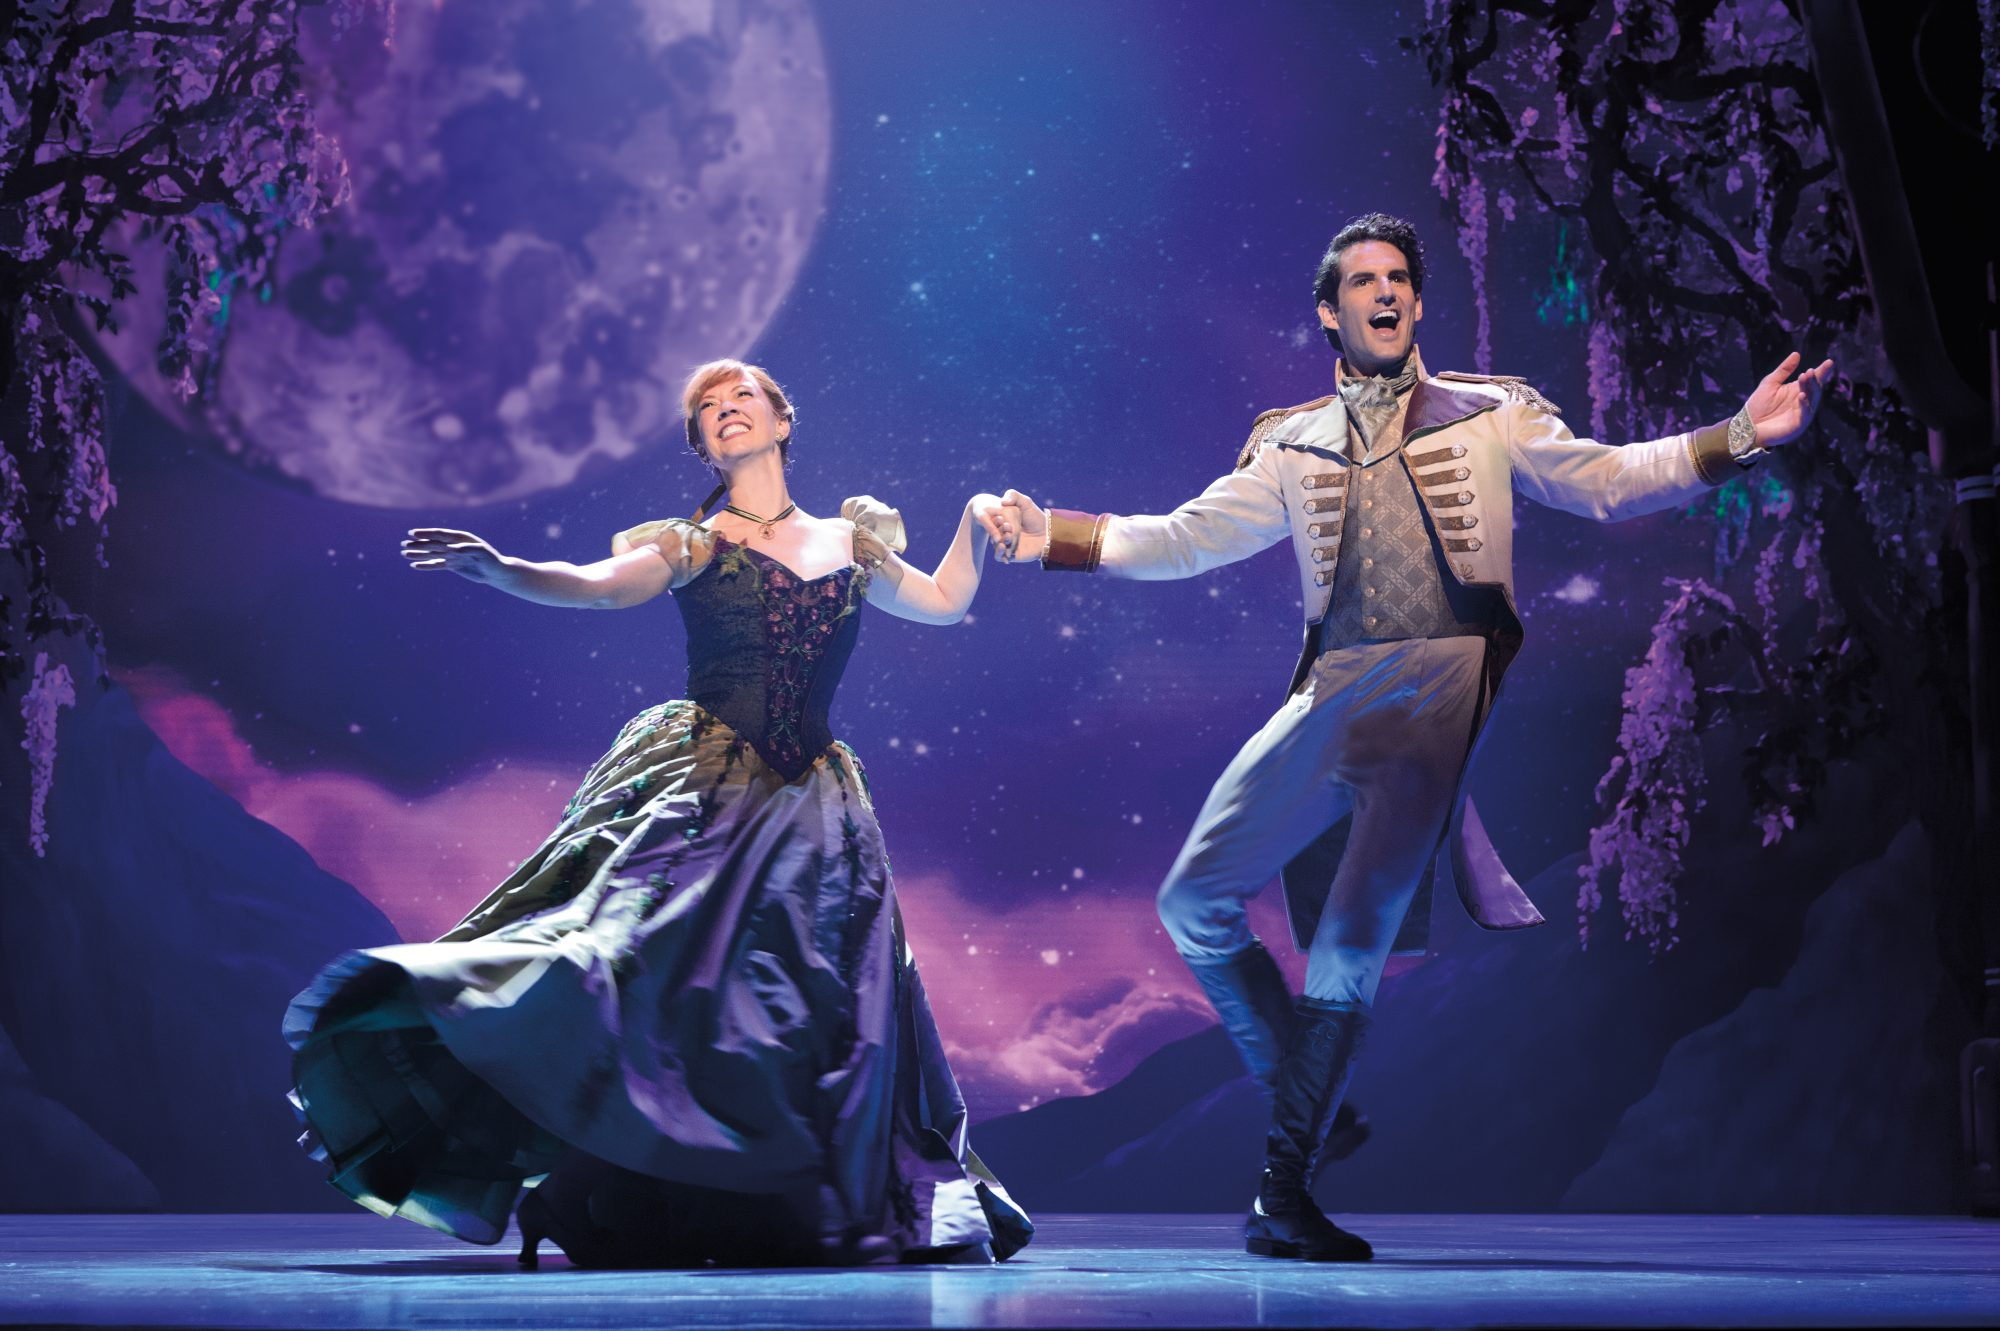 Patti Murin (Anna) and John Riddle (Hans) in FROZEN on Broadway. Photo by Deen van Meer